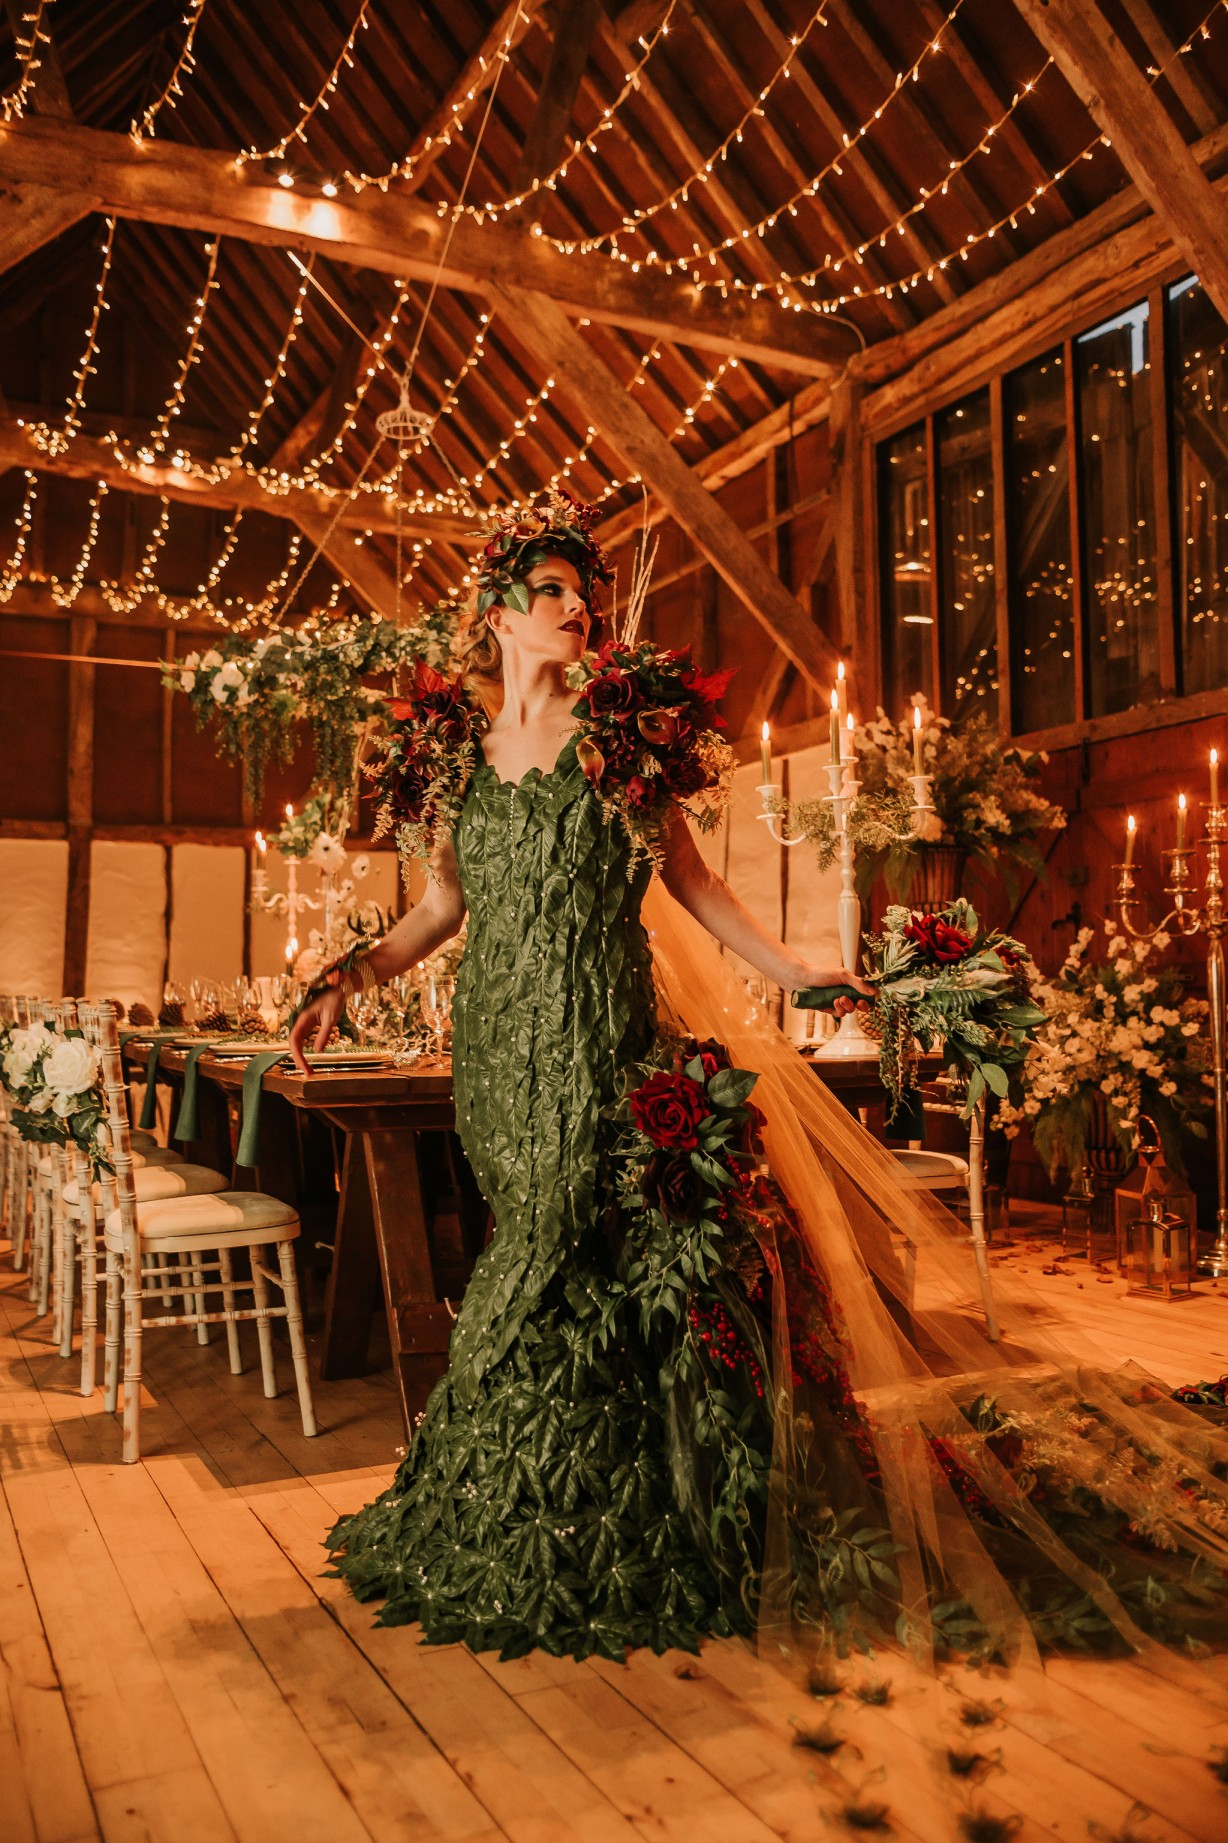 enchanting winter wedding - avant garde wedding dress - unique wedding ideas - alternative wedding wear